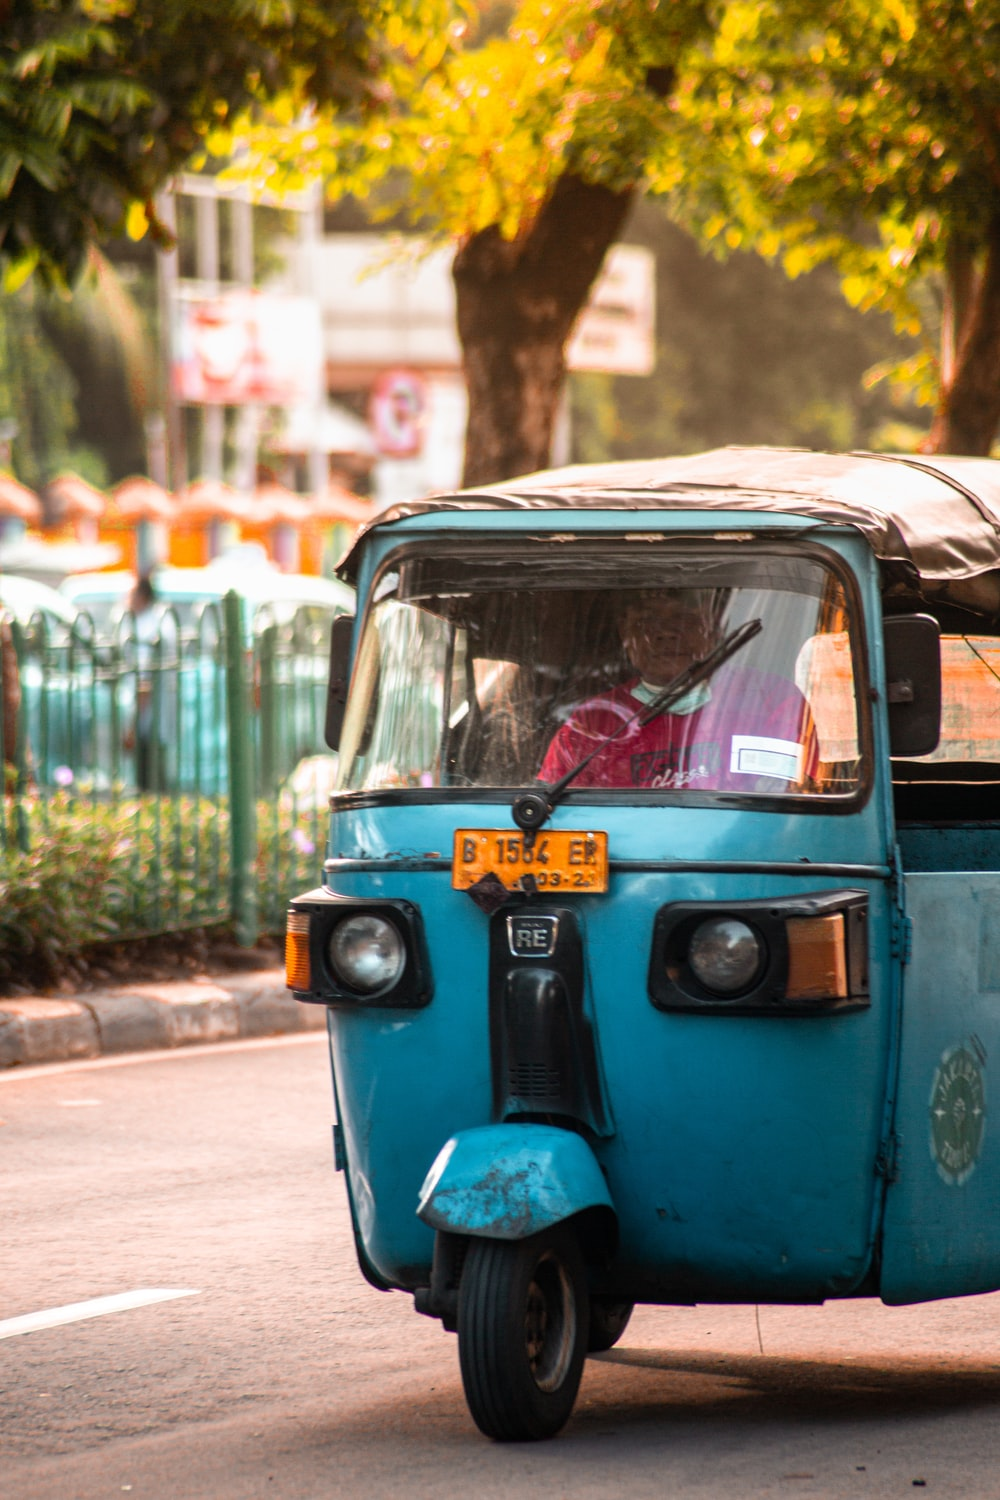 blue and black auto rickshaw on road during daytime